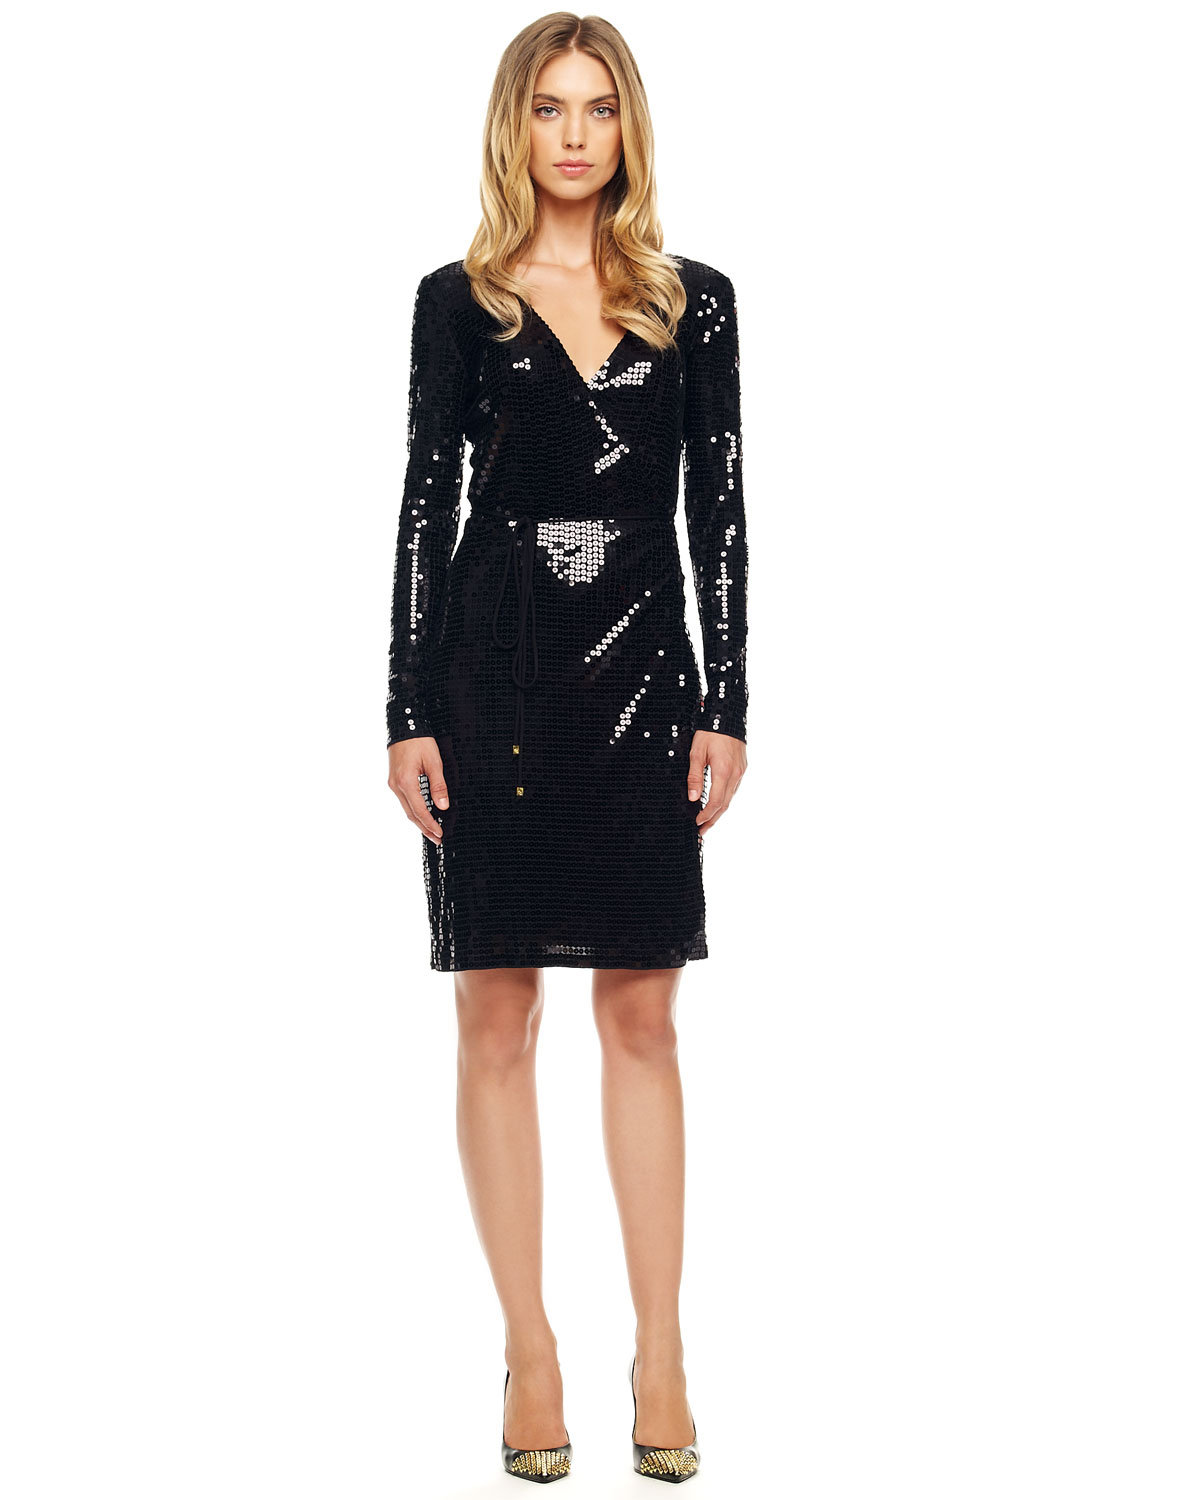 Michael kors Sequined Wrap Dress in Black